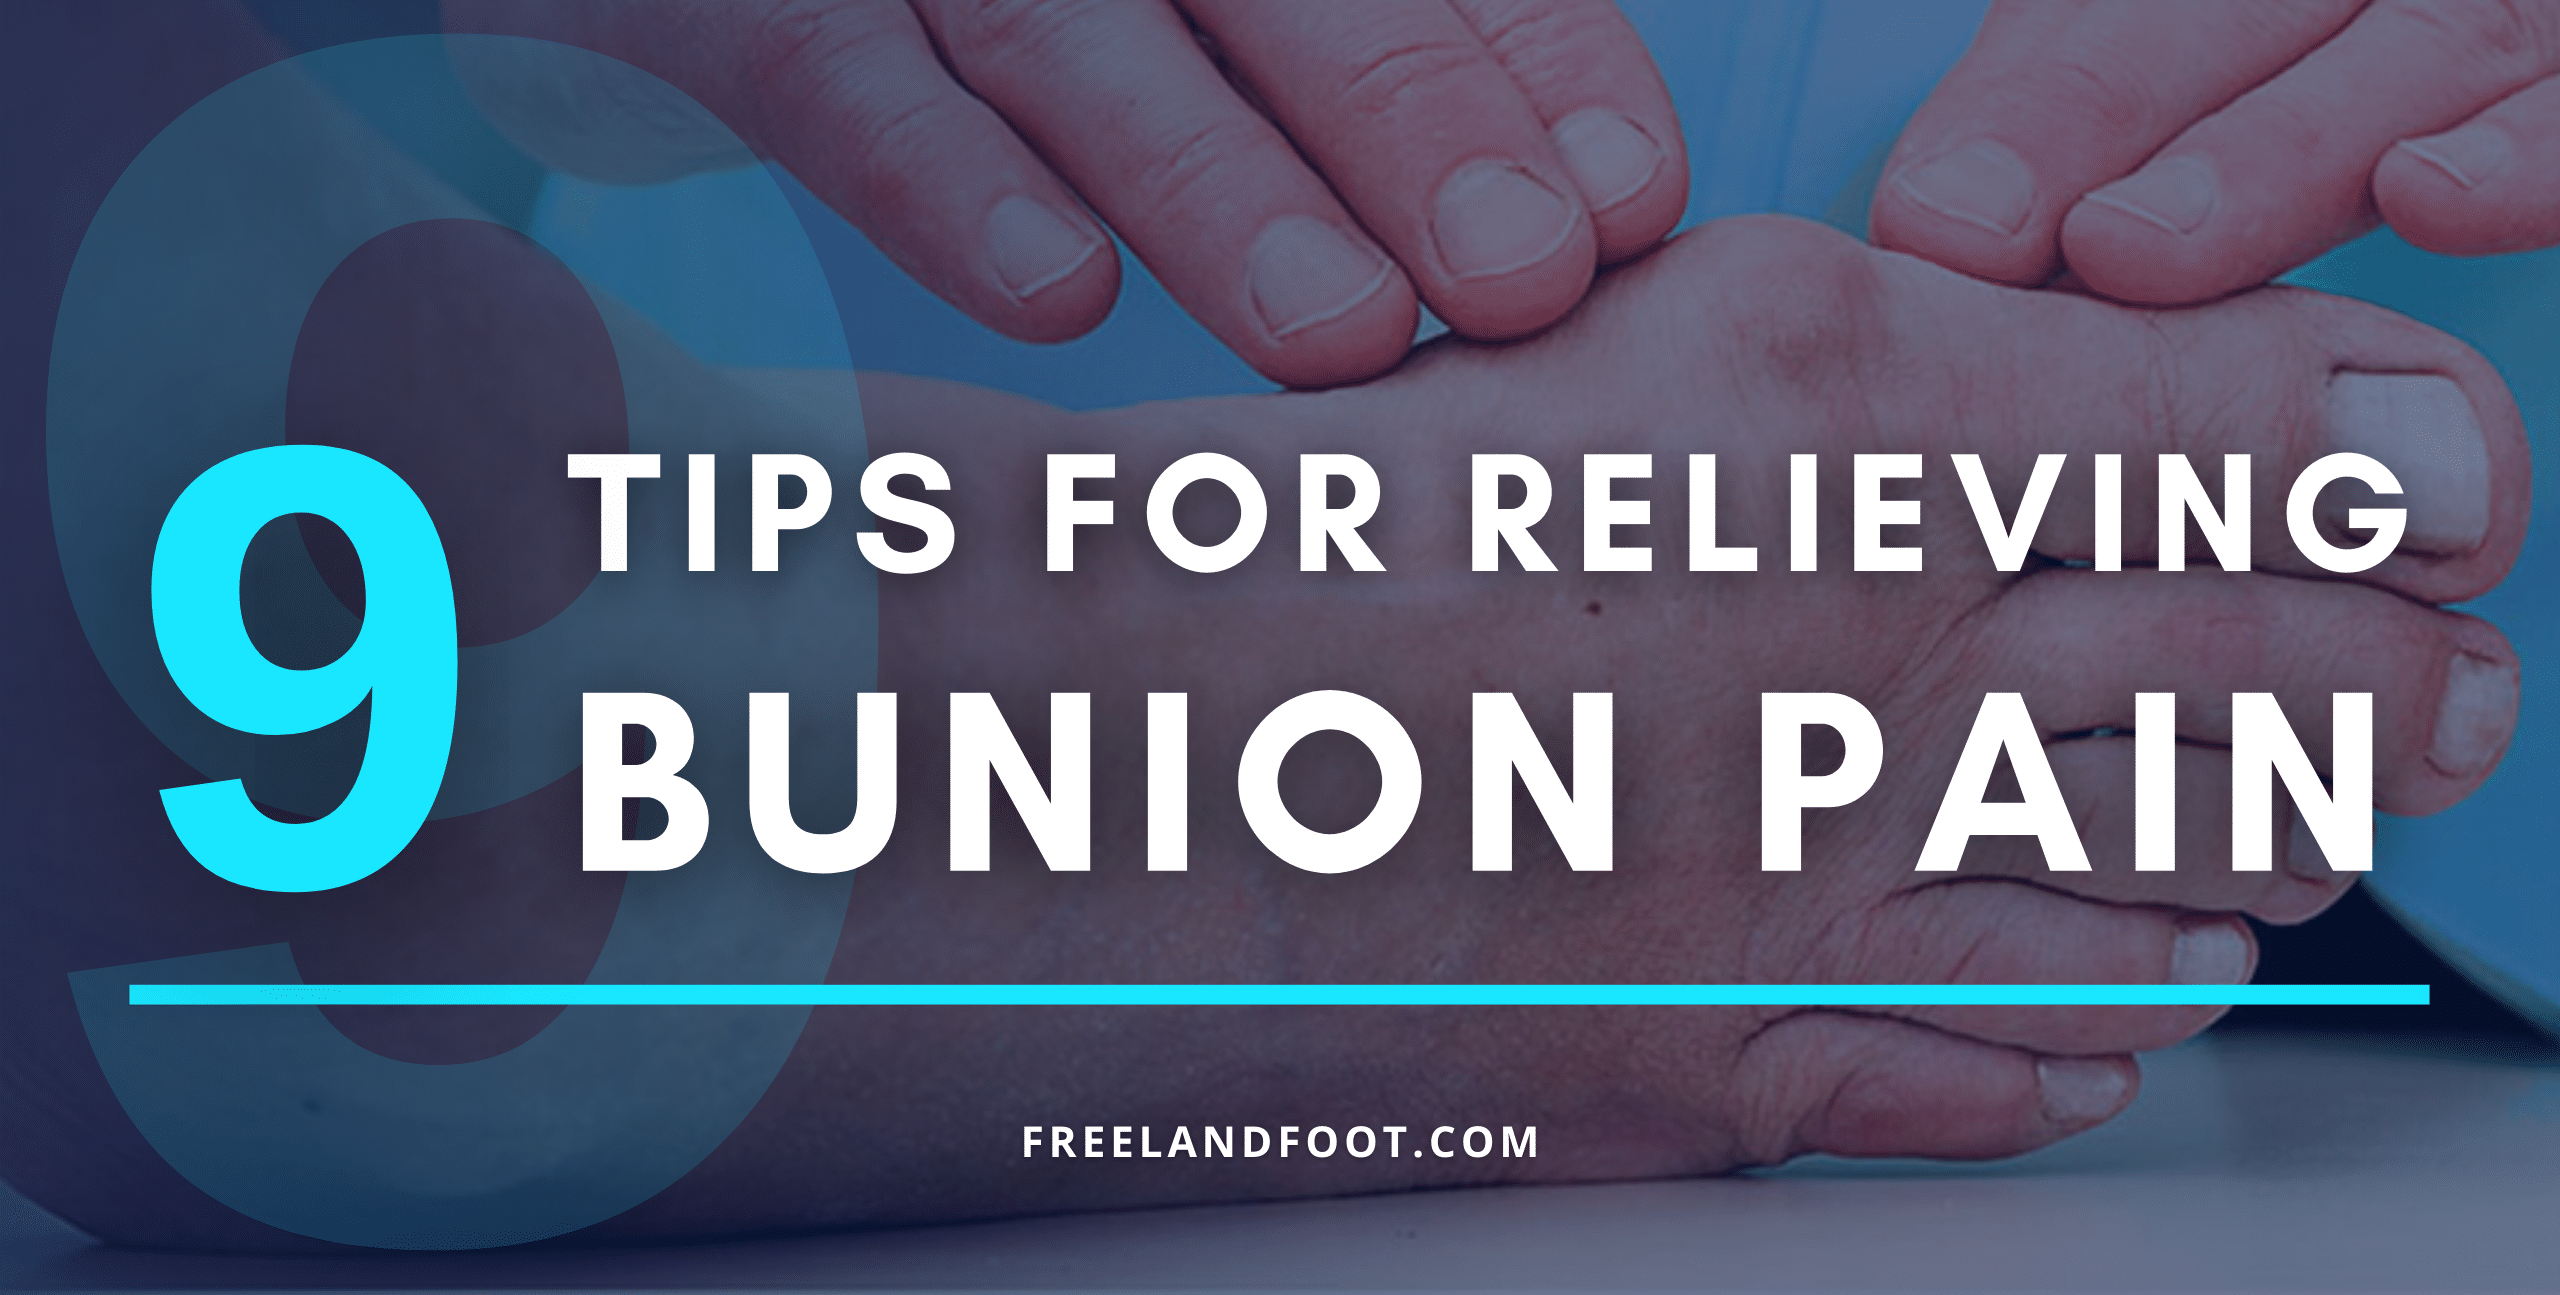 9 Tips for Relieving Bunion Pain